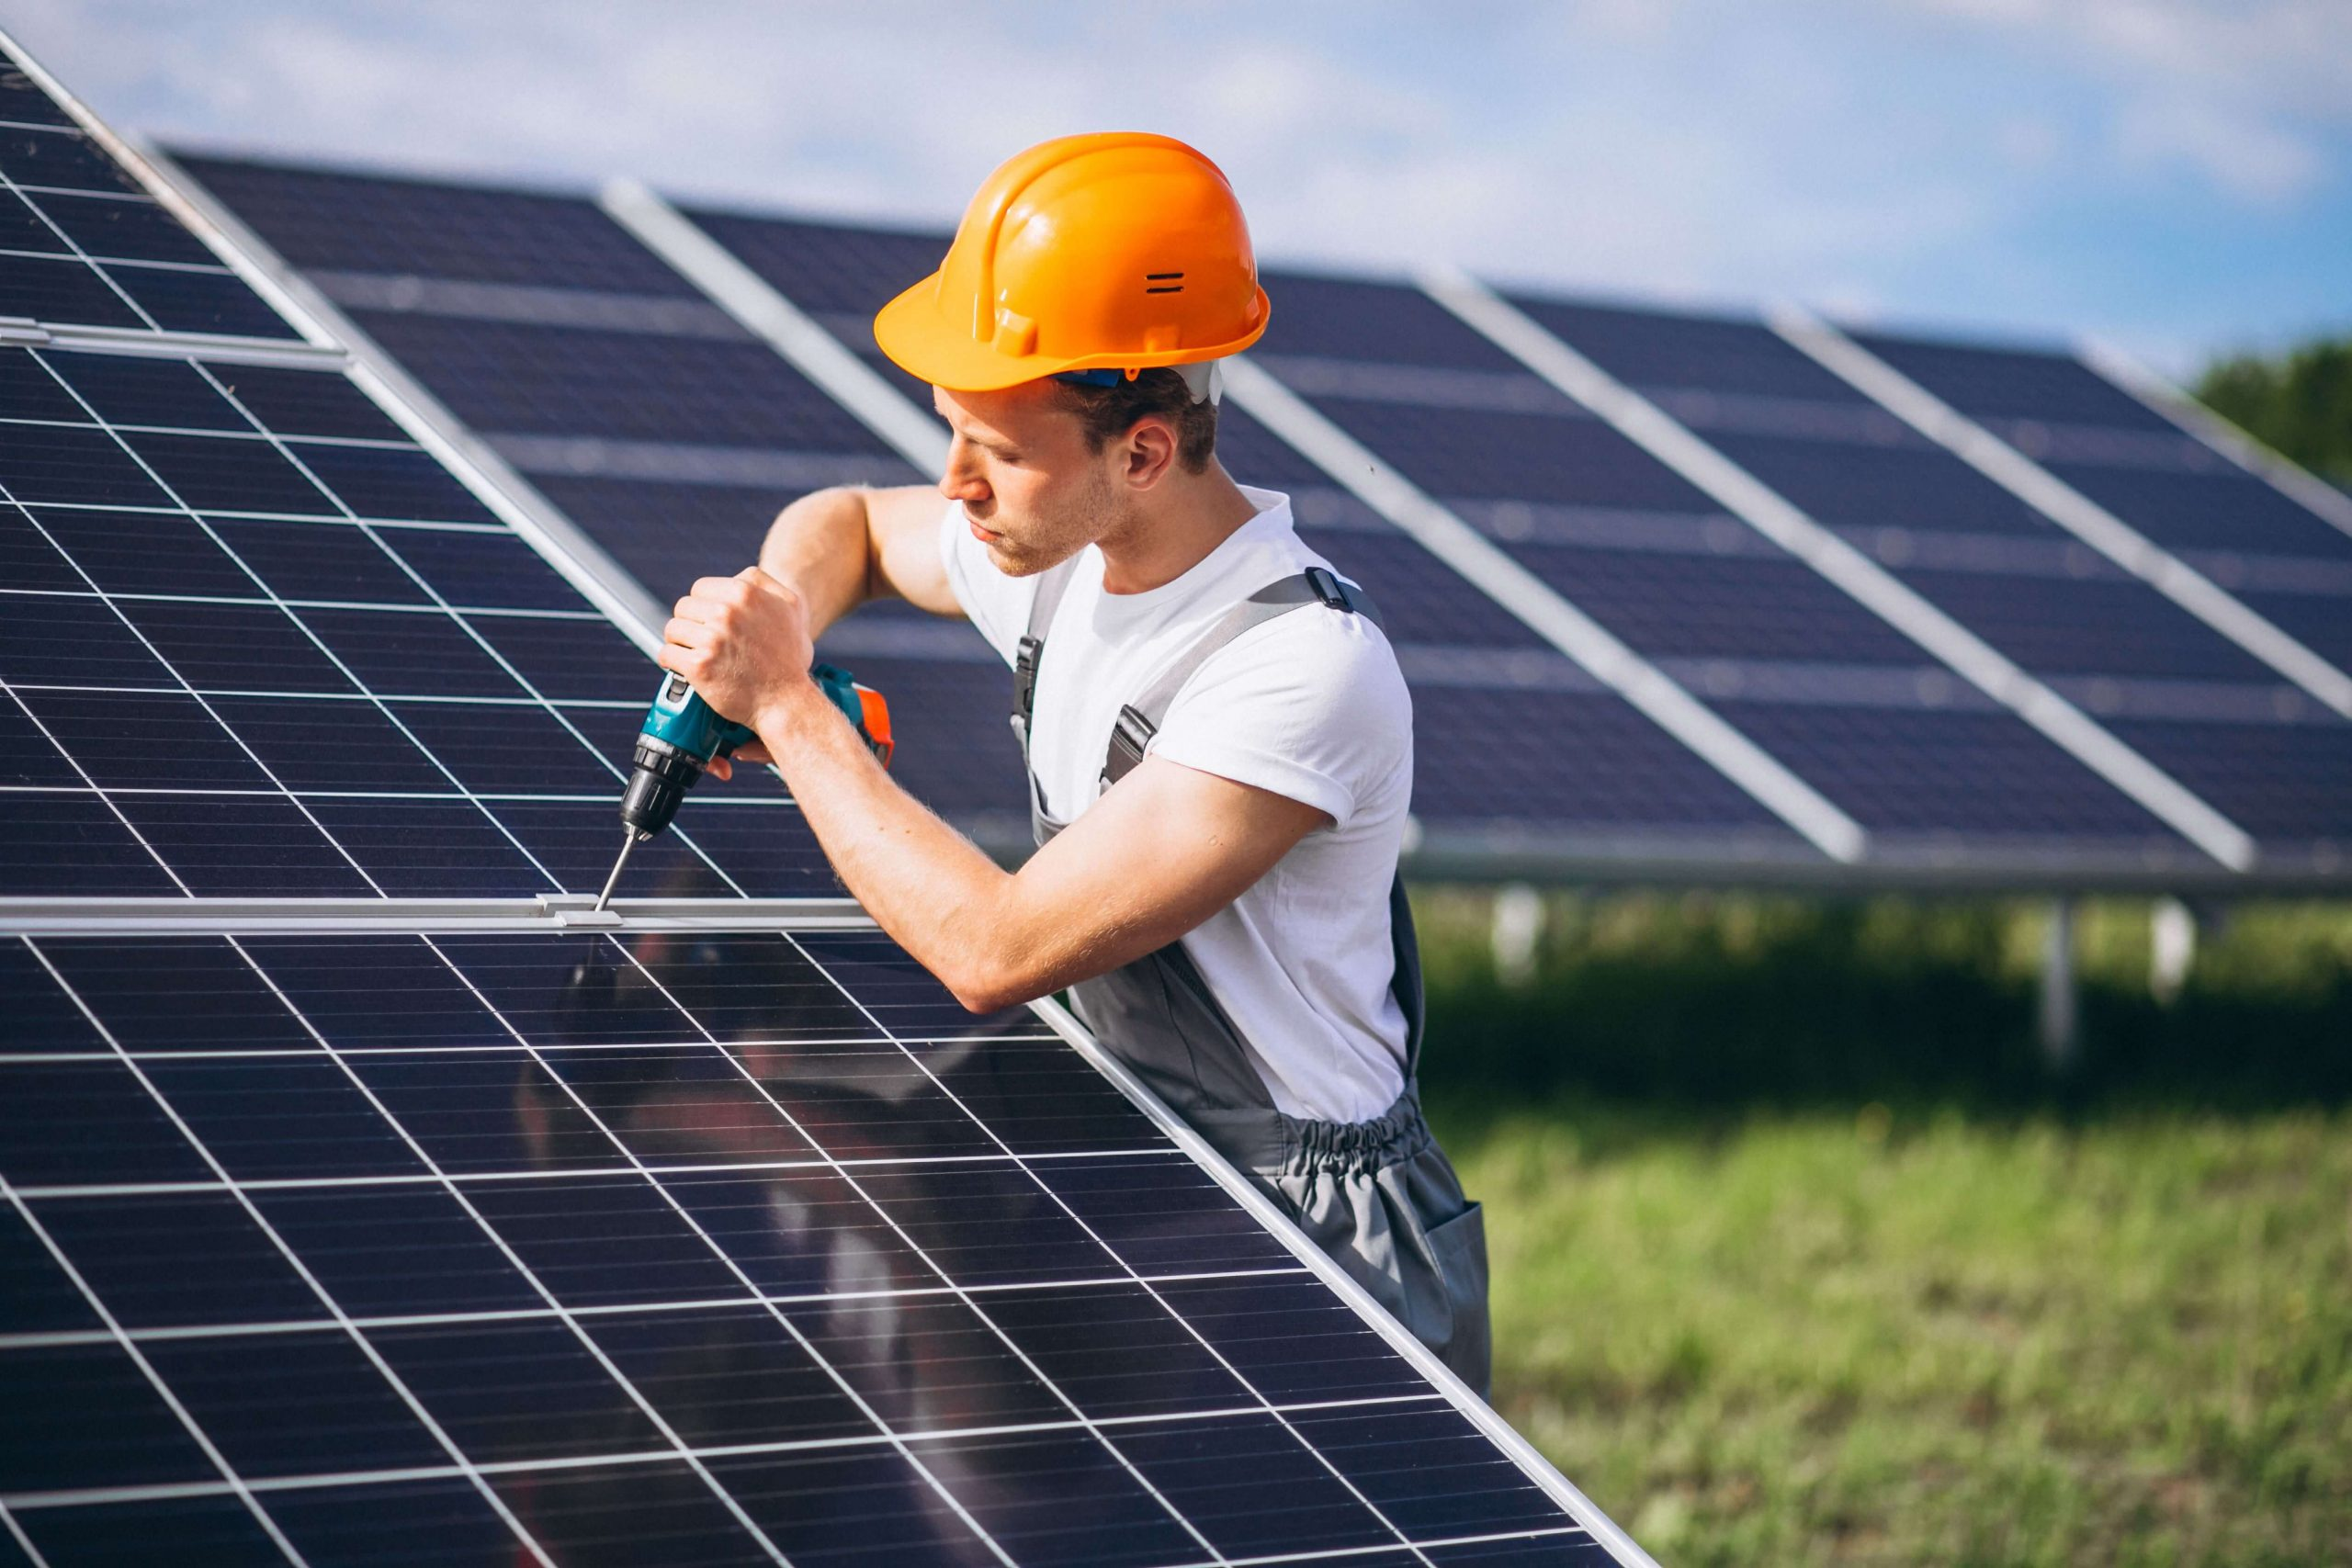 Solar Panels in India - Cost & Installation Requirements